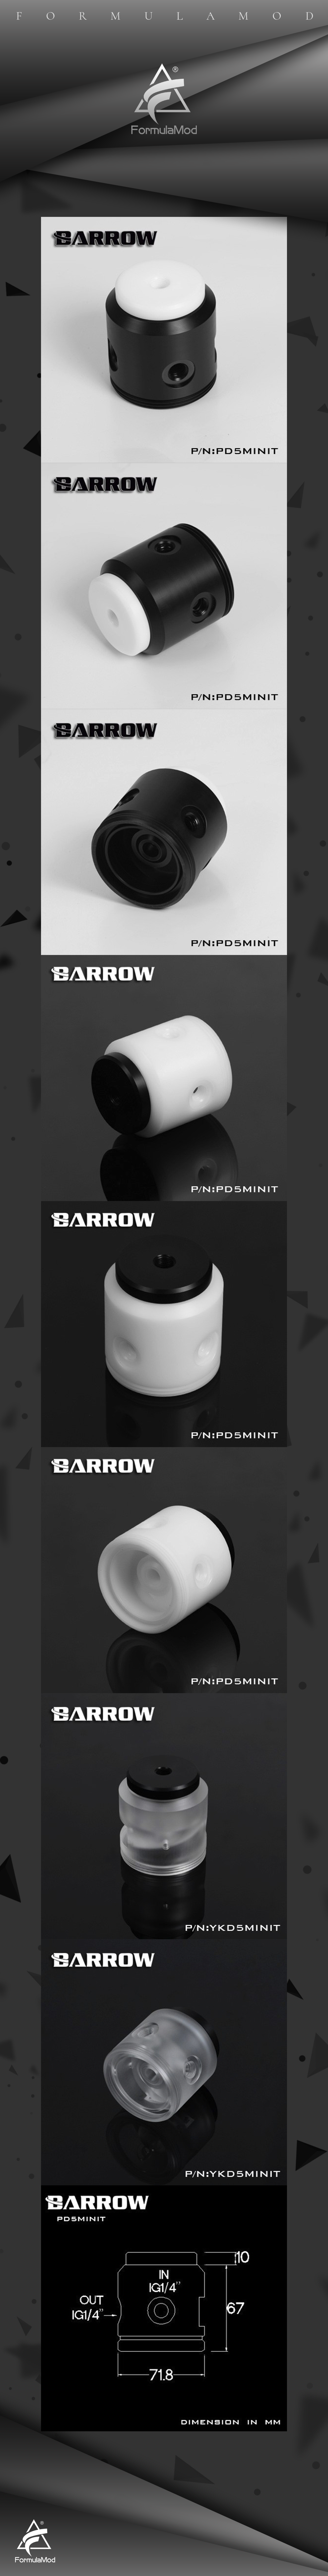 Barrow POM/PMMA acrylic water pump cover for D5 / MCP655 serise pump computer water cooling. PD5MINIT